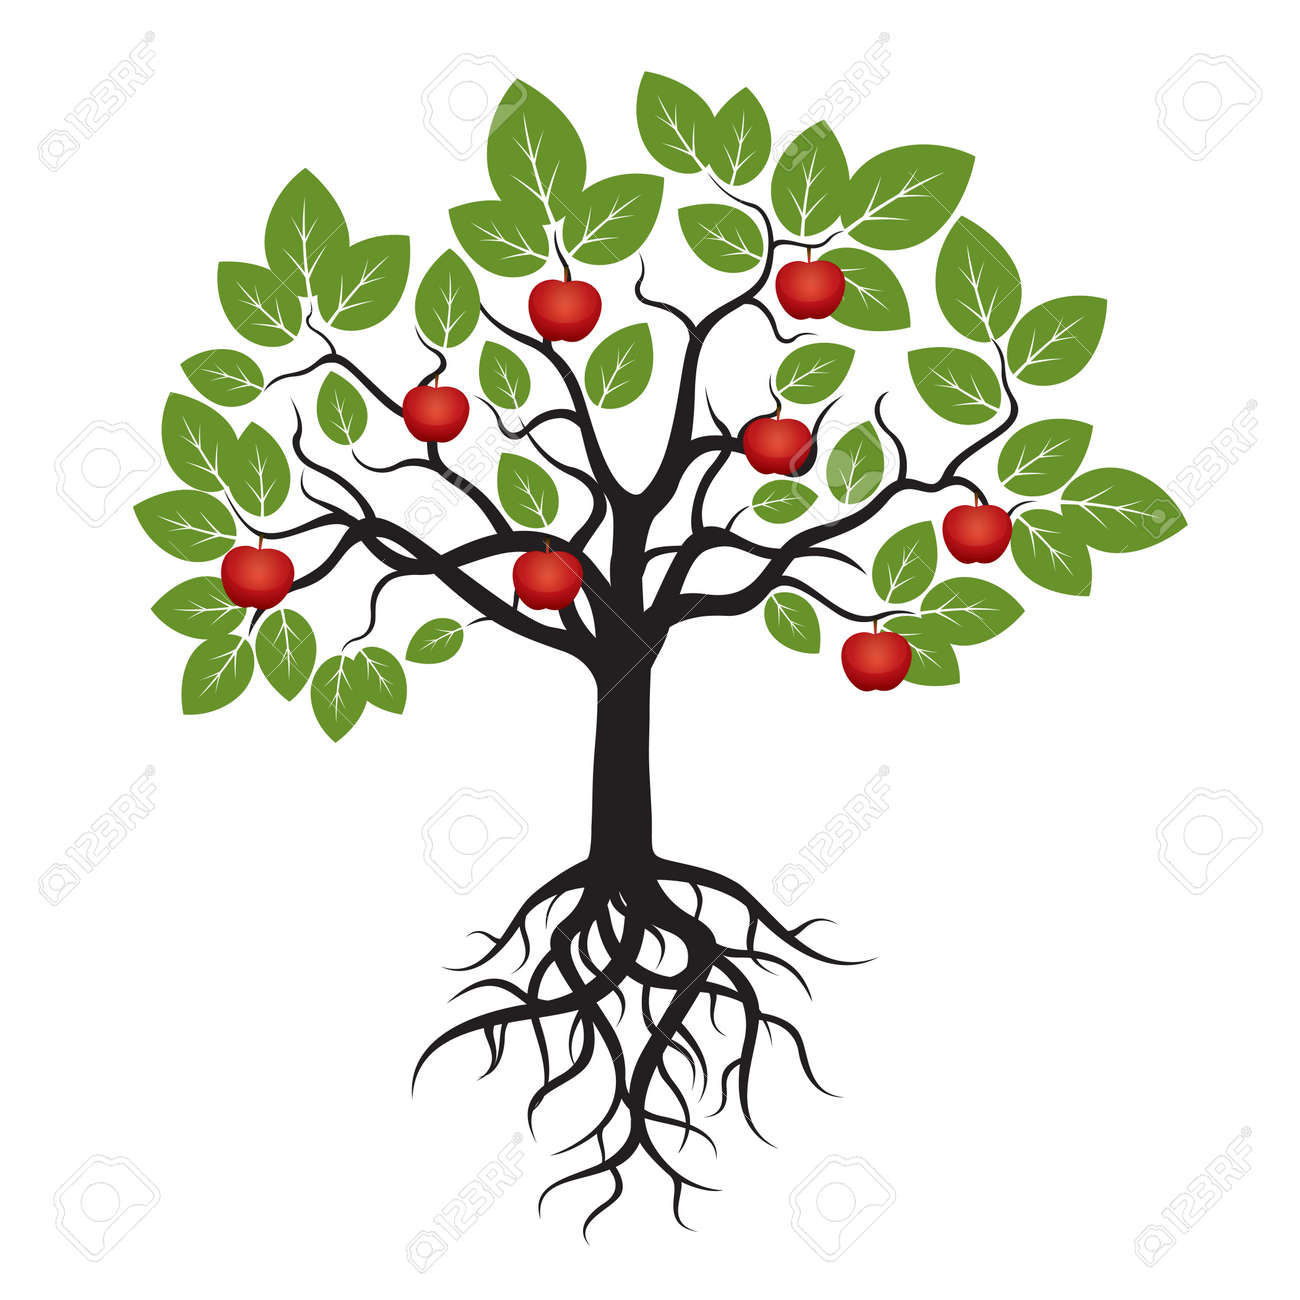 Tree Green Leafs and Red Apple. - 41867815